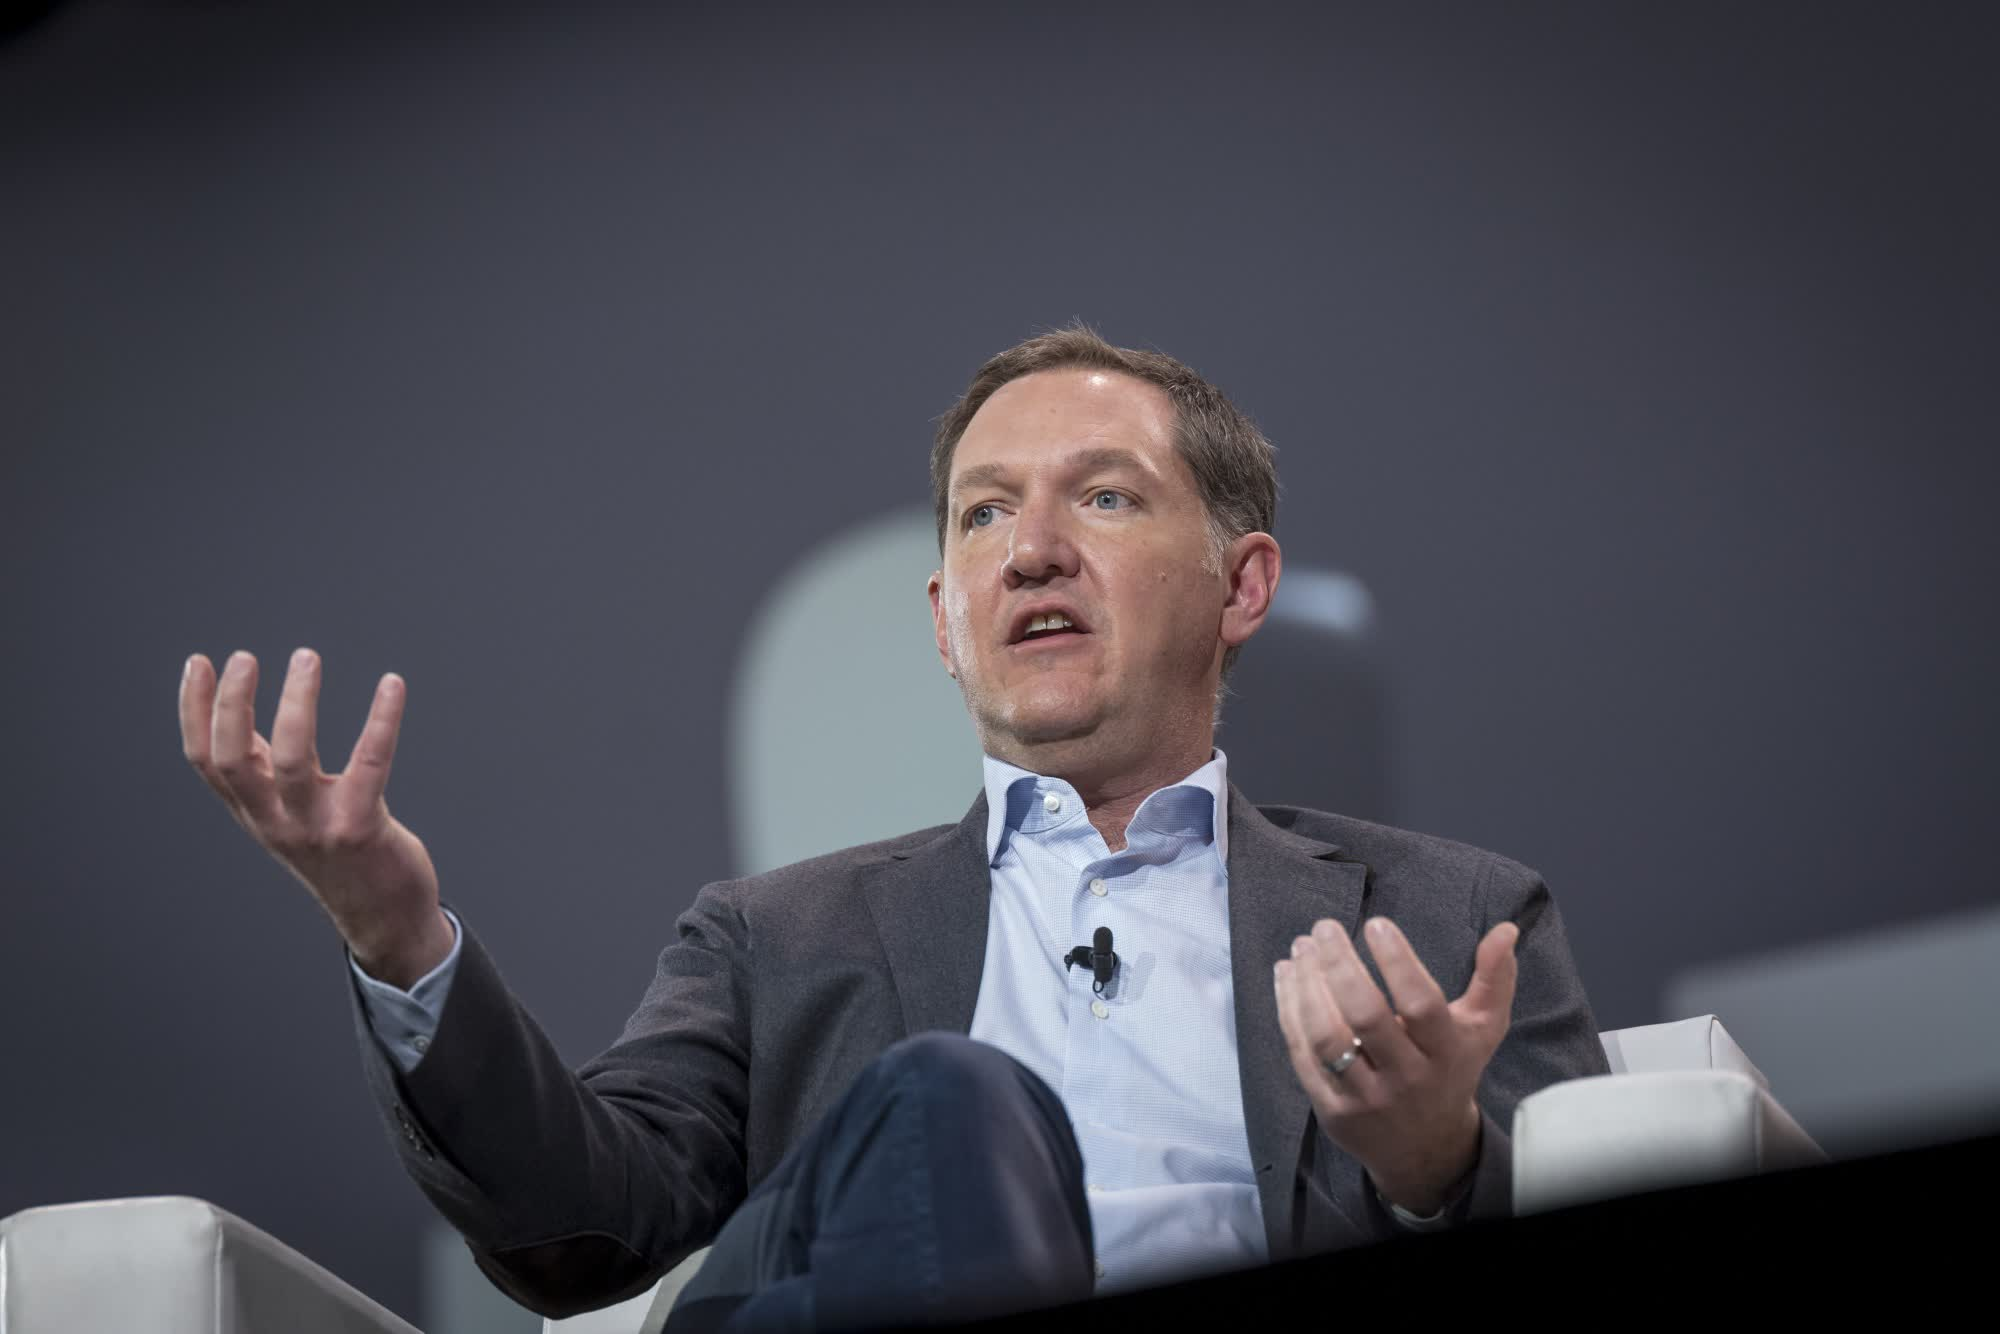 Jim Whitehurst is stepping down as president of IBM after just 14 months